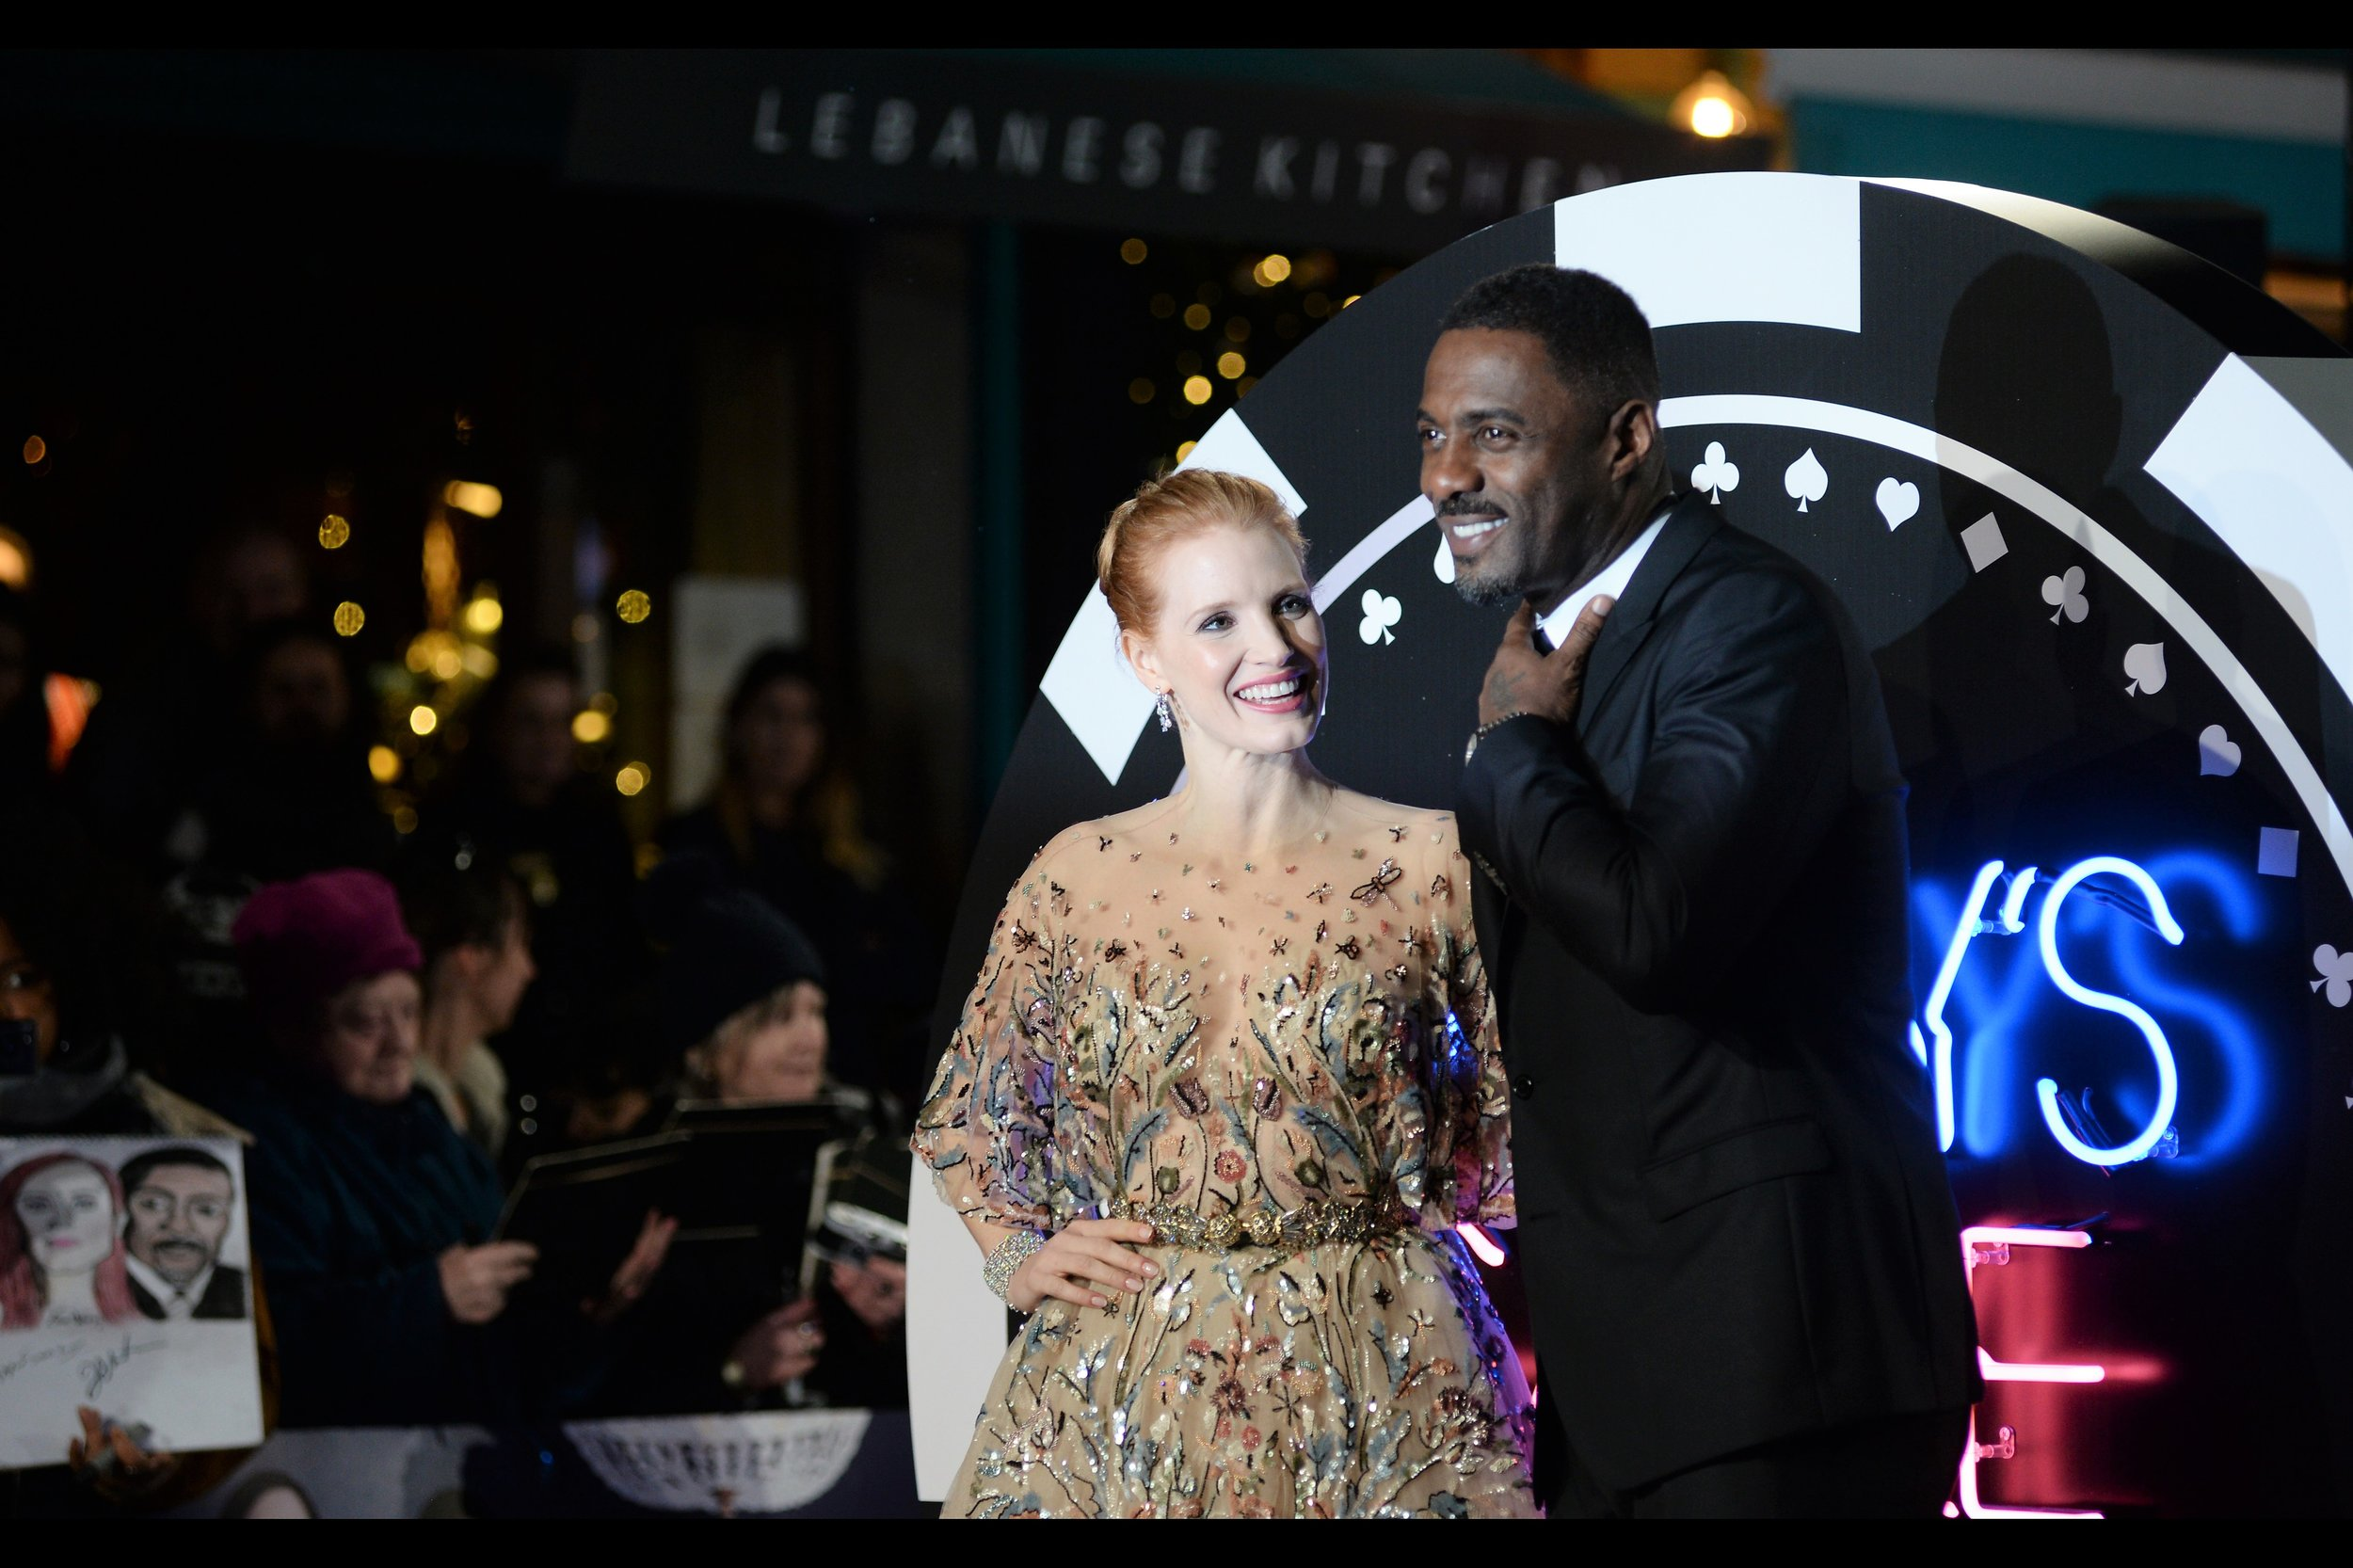 """I'm comfortably wearing thermals under my suit, but my co-star is not.... and I feel kind of bad about that"" . Disgracefully I did not offer Jessica Chastain my (black) thinsulate beanie. I feel kind of bad about that... but I did need it to keep my head warm."